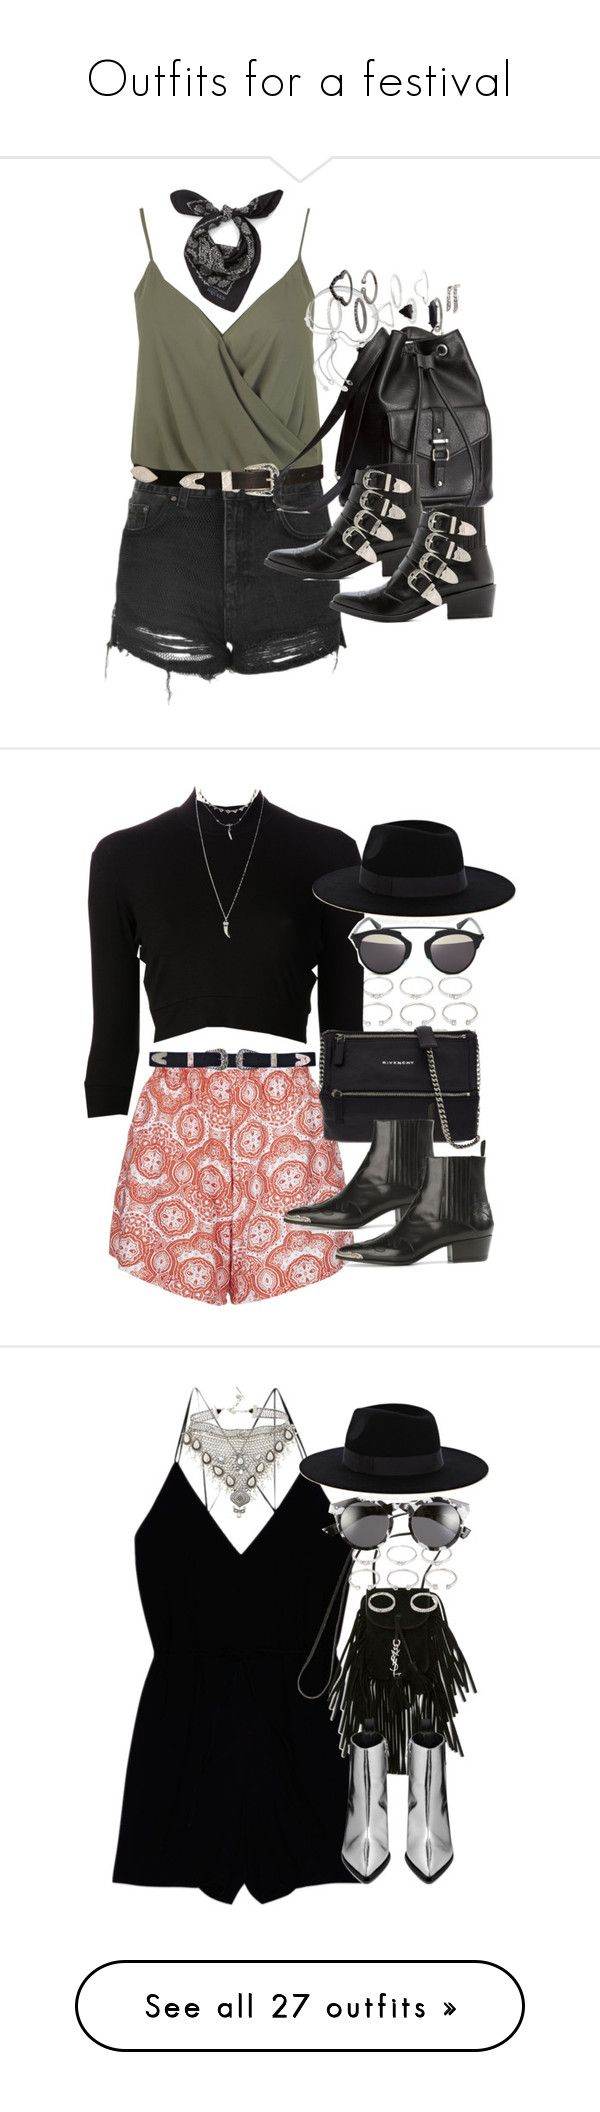 """""""Outfits for a festival"""" by ferned ❤ liked on Polyvore featuring Miss Selfridge, Topshop, ASOS, Alexander McQueen, H&M, Toga, Monica Vinader, Motel, Forever 21 and Again"""